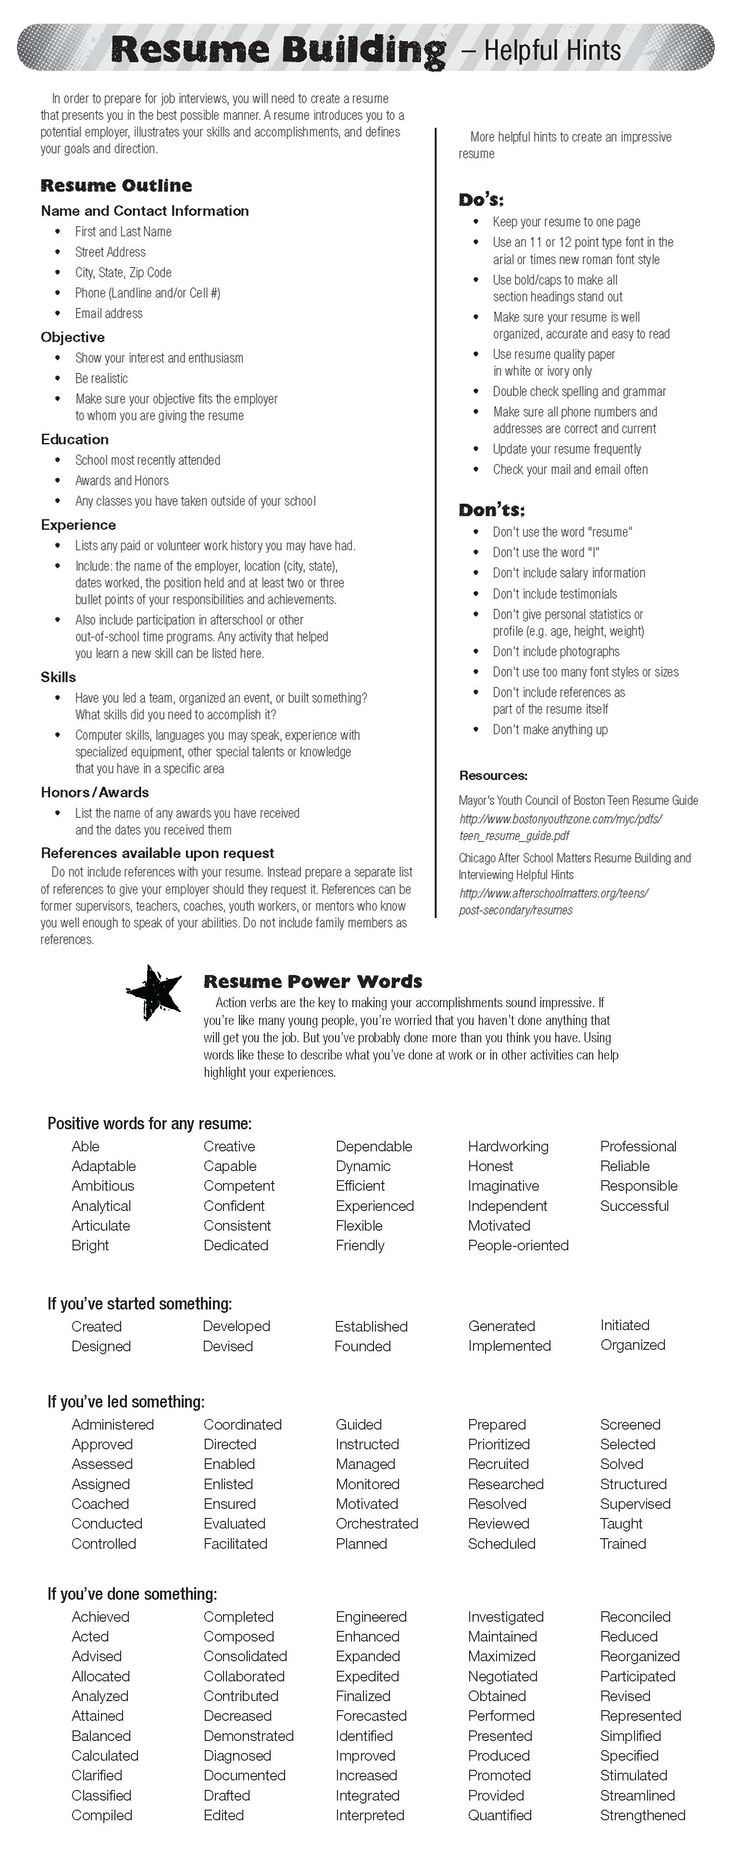 Opposenewapstandardsus  Prepossessing  Ideas About Resume On Pinterest  Cv Format Resume Cv And  With Magnificent  Ideas About Resume On Pinterest  Cv Format Resume Cv And Resume Templates With Cute Resume Vitae Also Linkedin Resume Generator In Addition Indeed Find Resumes And Call Center Manager Resume As Well As How To Write A Proper Resume Additionally General Cover Letter For Resume From Pinterestcom With Opposenewapstandardsus  Magnificent  Ideas About Resume On Pinterest  Cv Format Resume Cv And  With Cute  Ideas About Resume On Pinterest  Cv Format Resume Cv And Resume Templates And Prepossessing Resume Vitae Also Linkedin Resume Generator In Addition Indeed Find Resumes From Pinterestcom